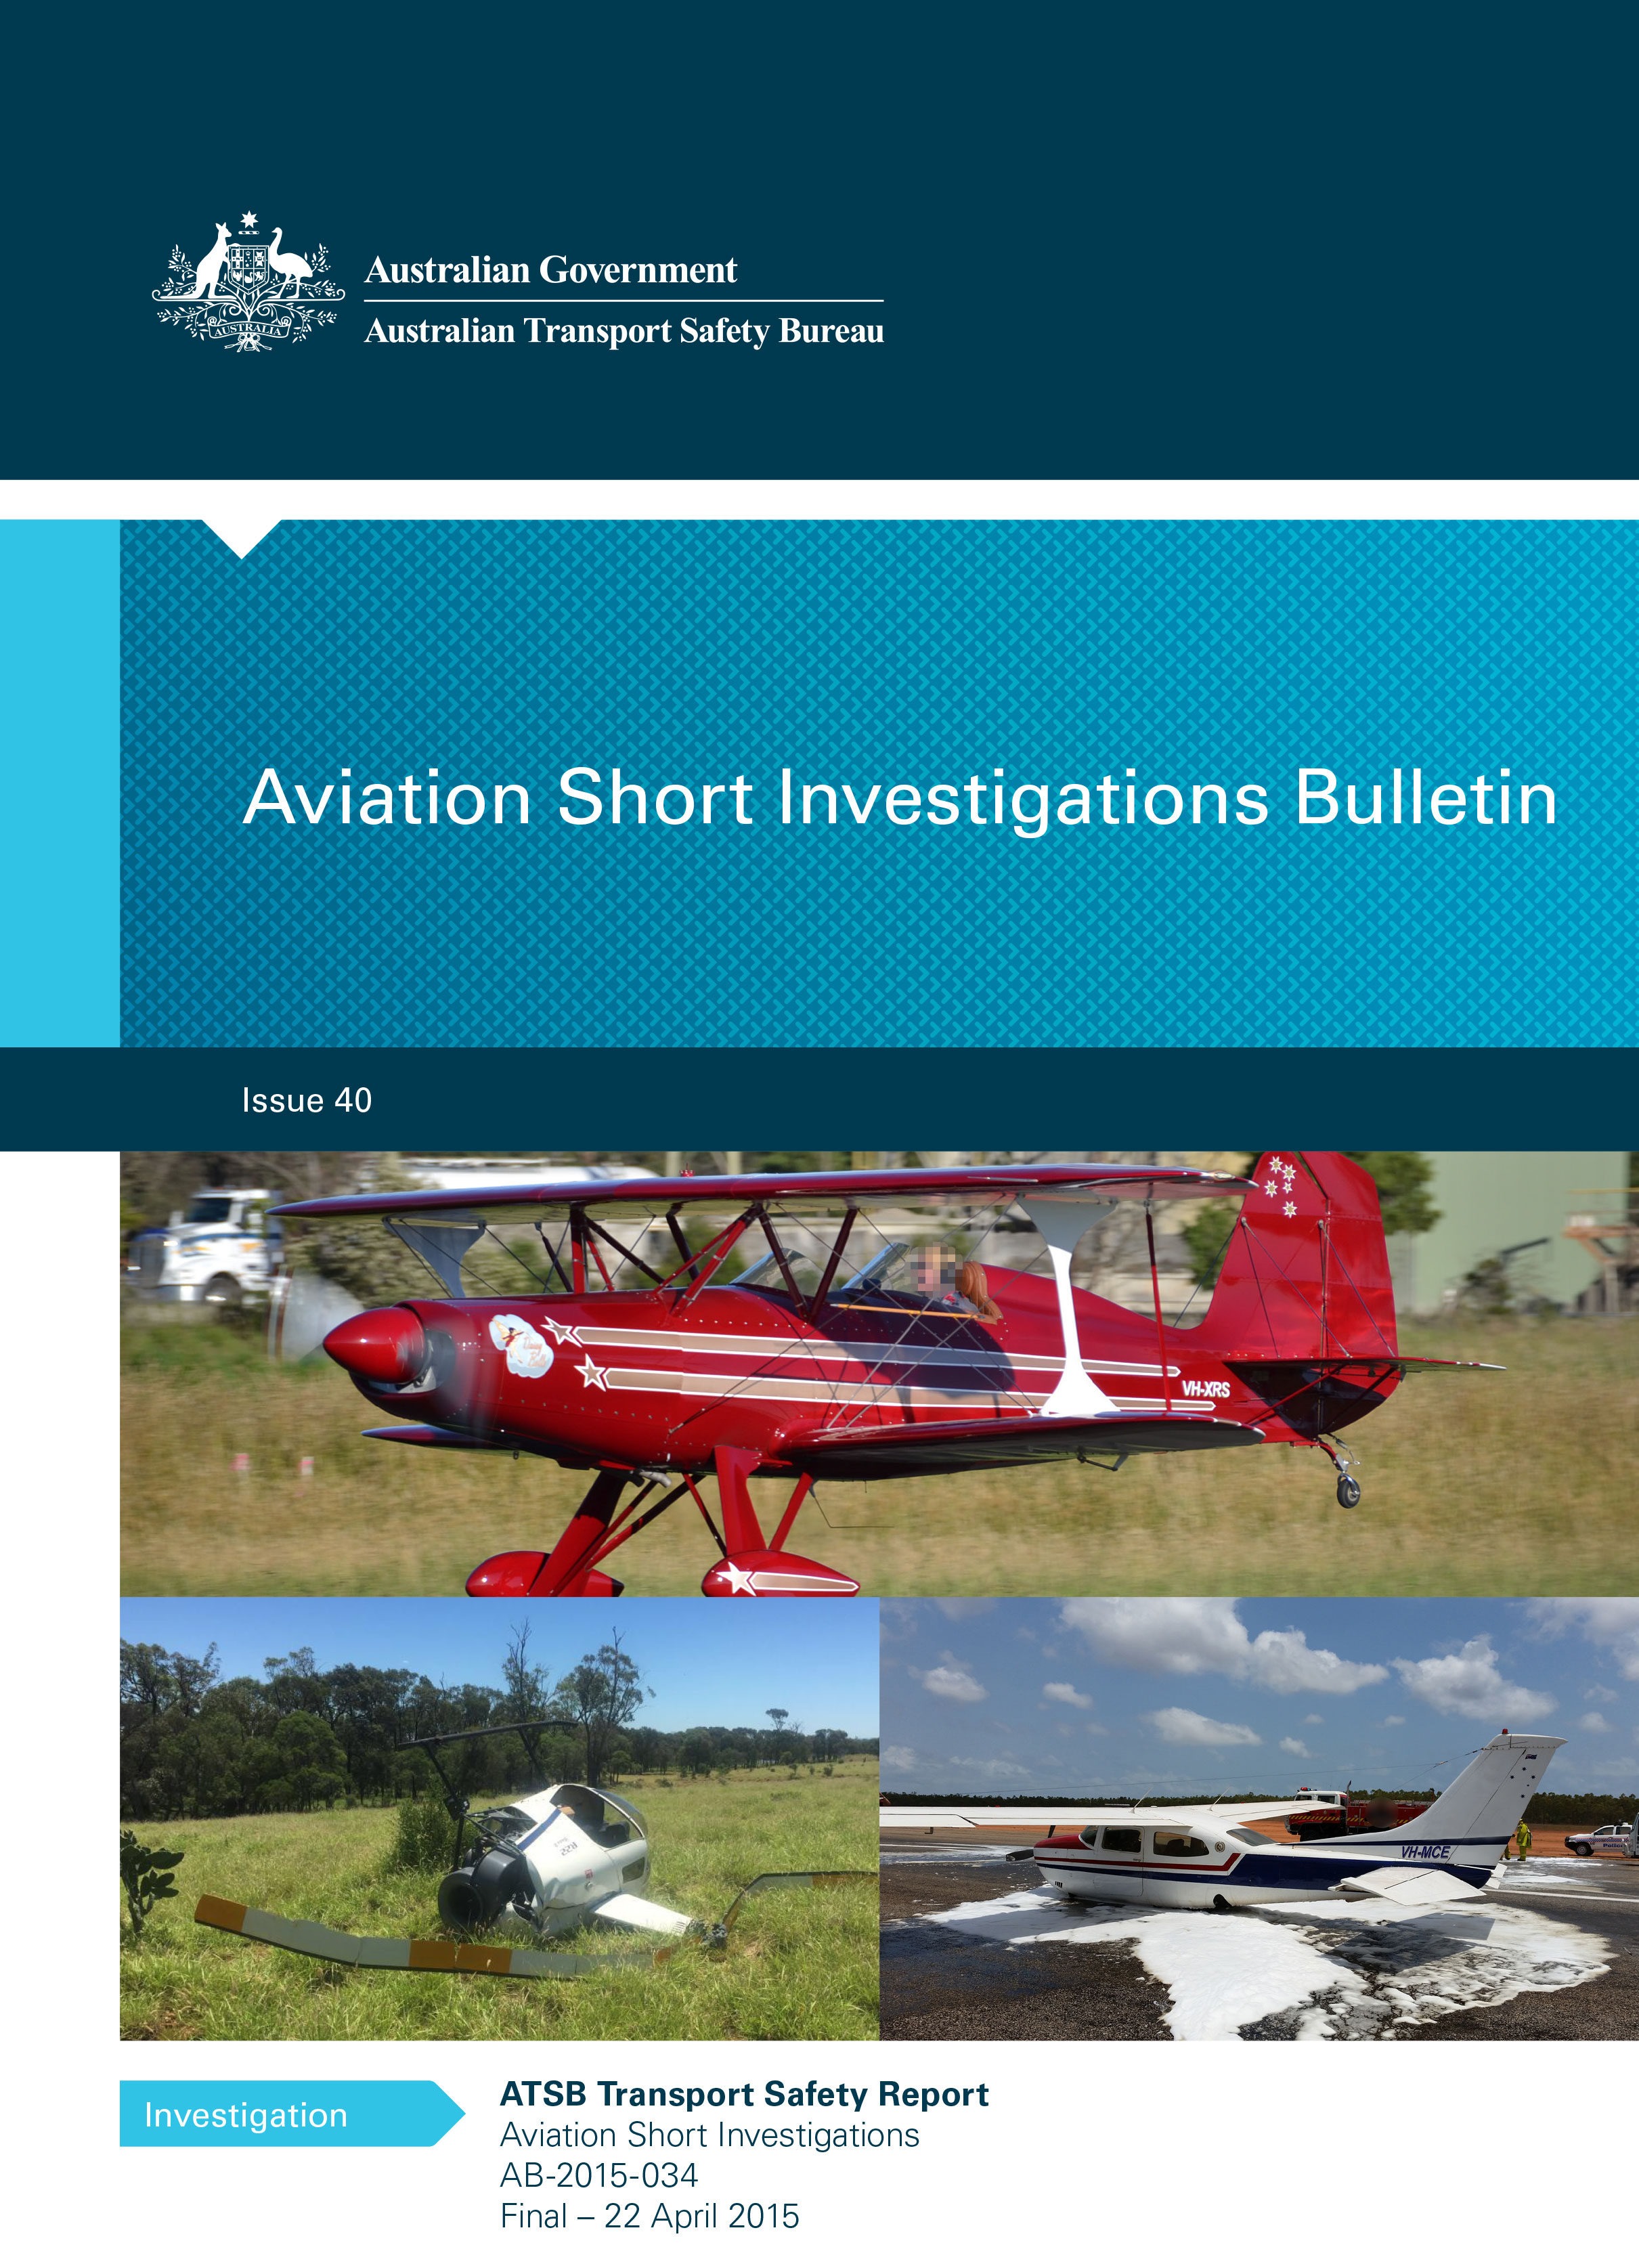 Download complete document - Aviation Short Investigation Bulletin Issue 40